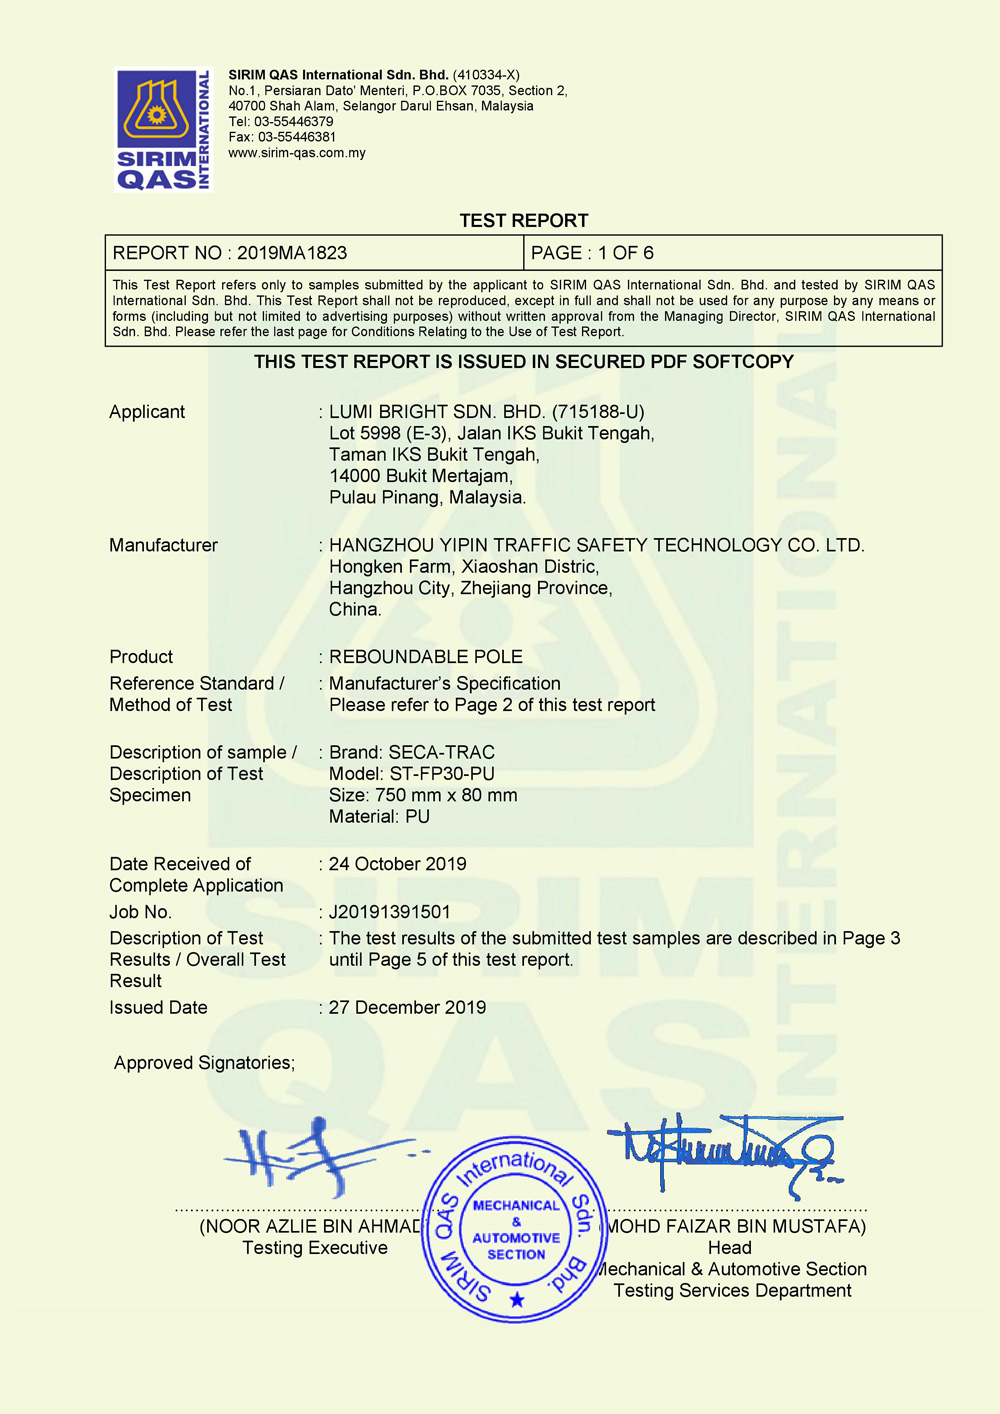 SIRIM Certification of passed the test on Reboundable Pole_Flexible Pole